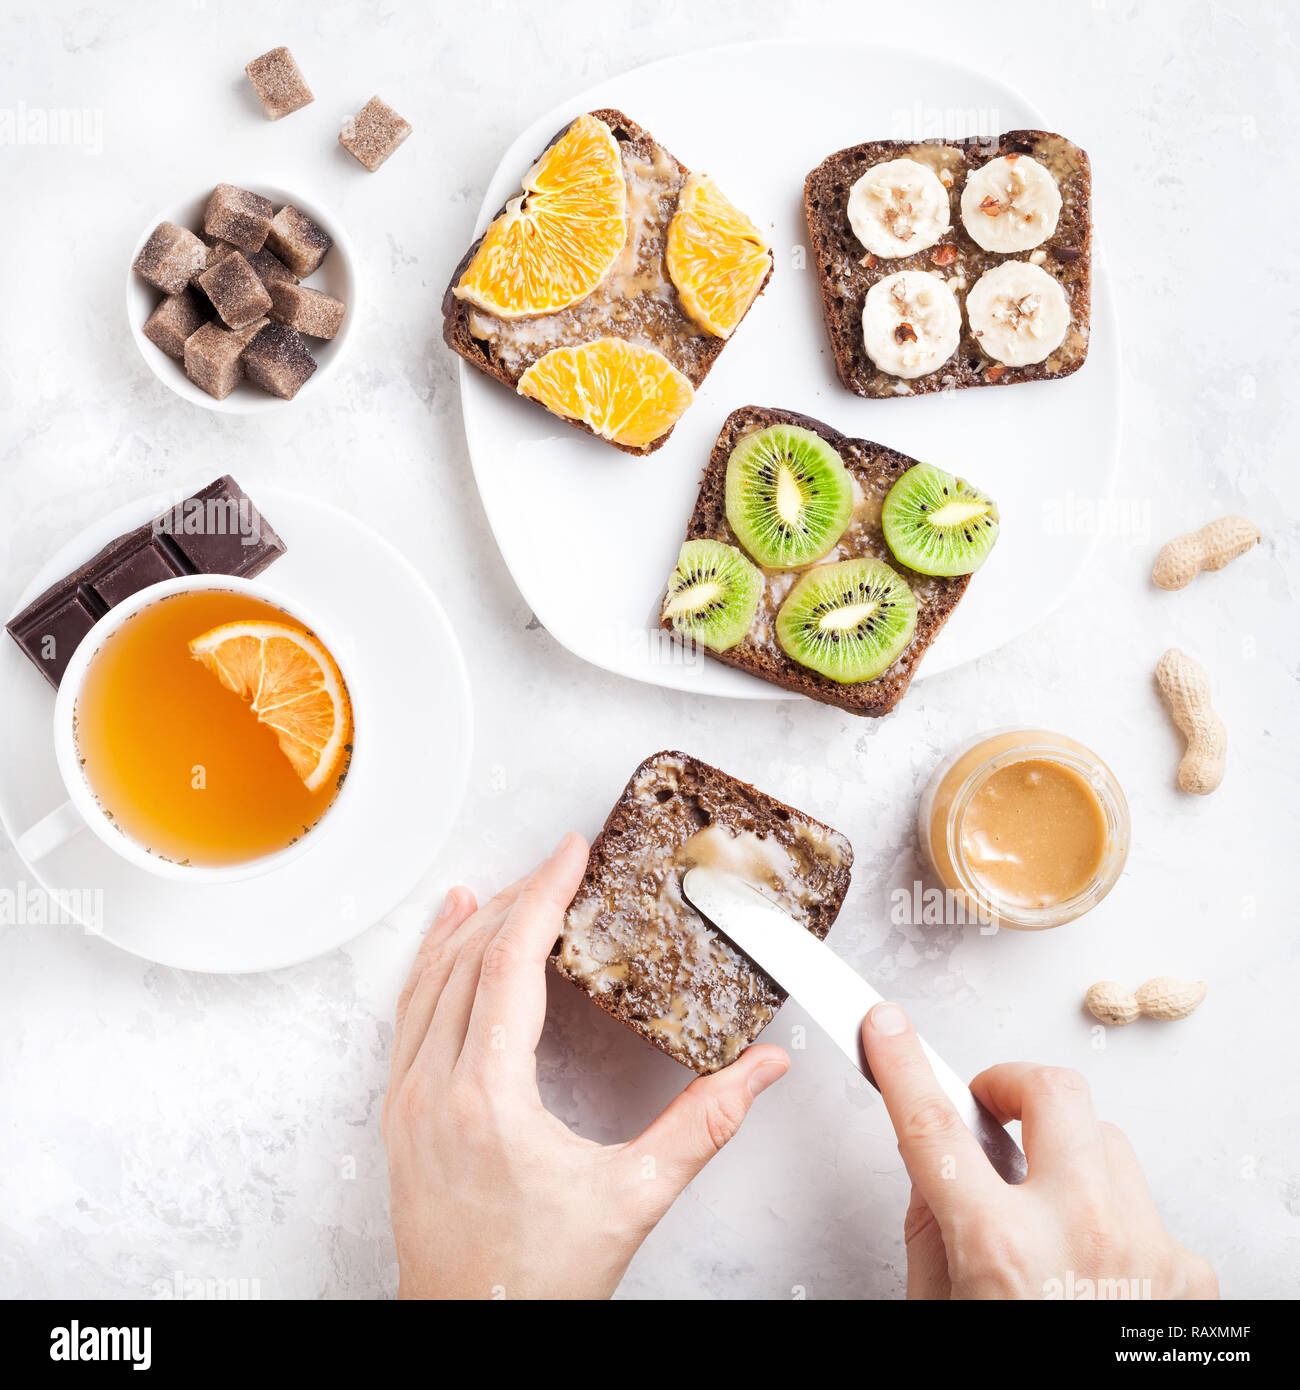 Woman hands spreading peanut butter on the bread in the morning on white marble background - Stock Image